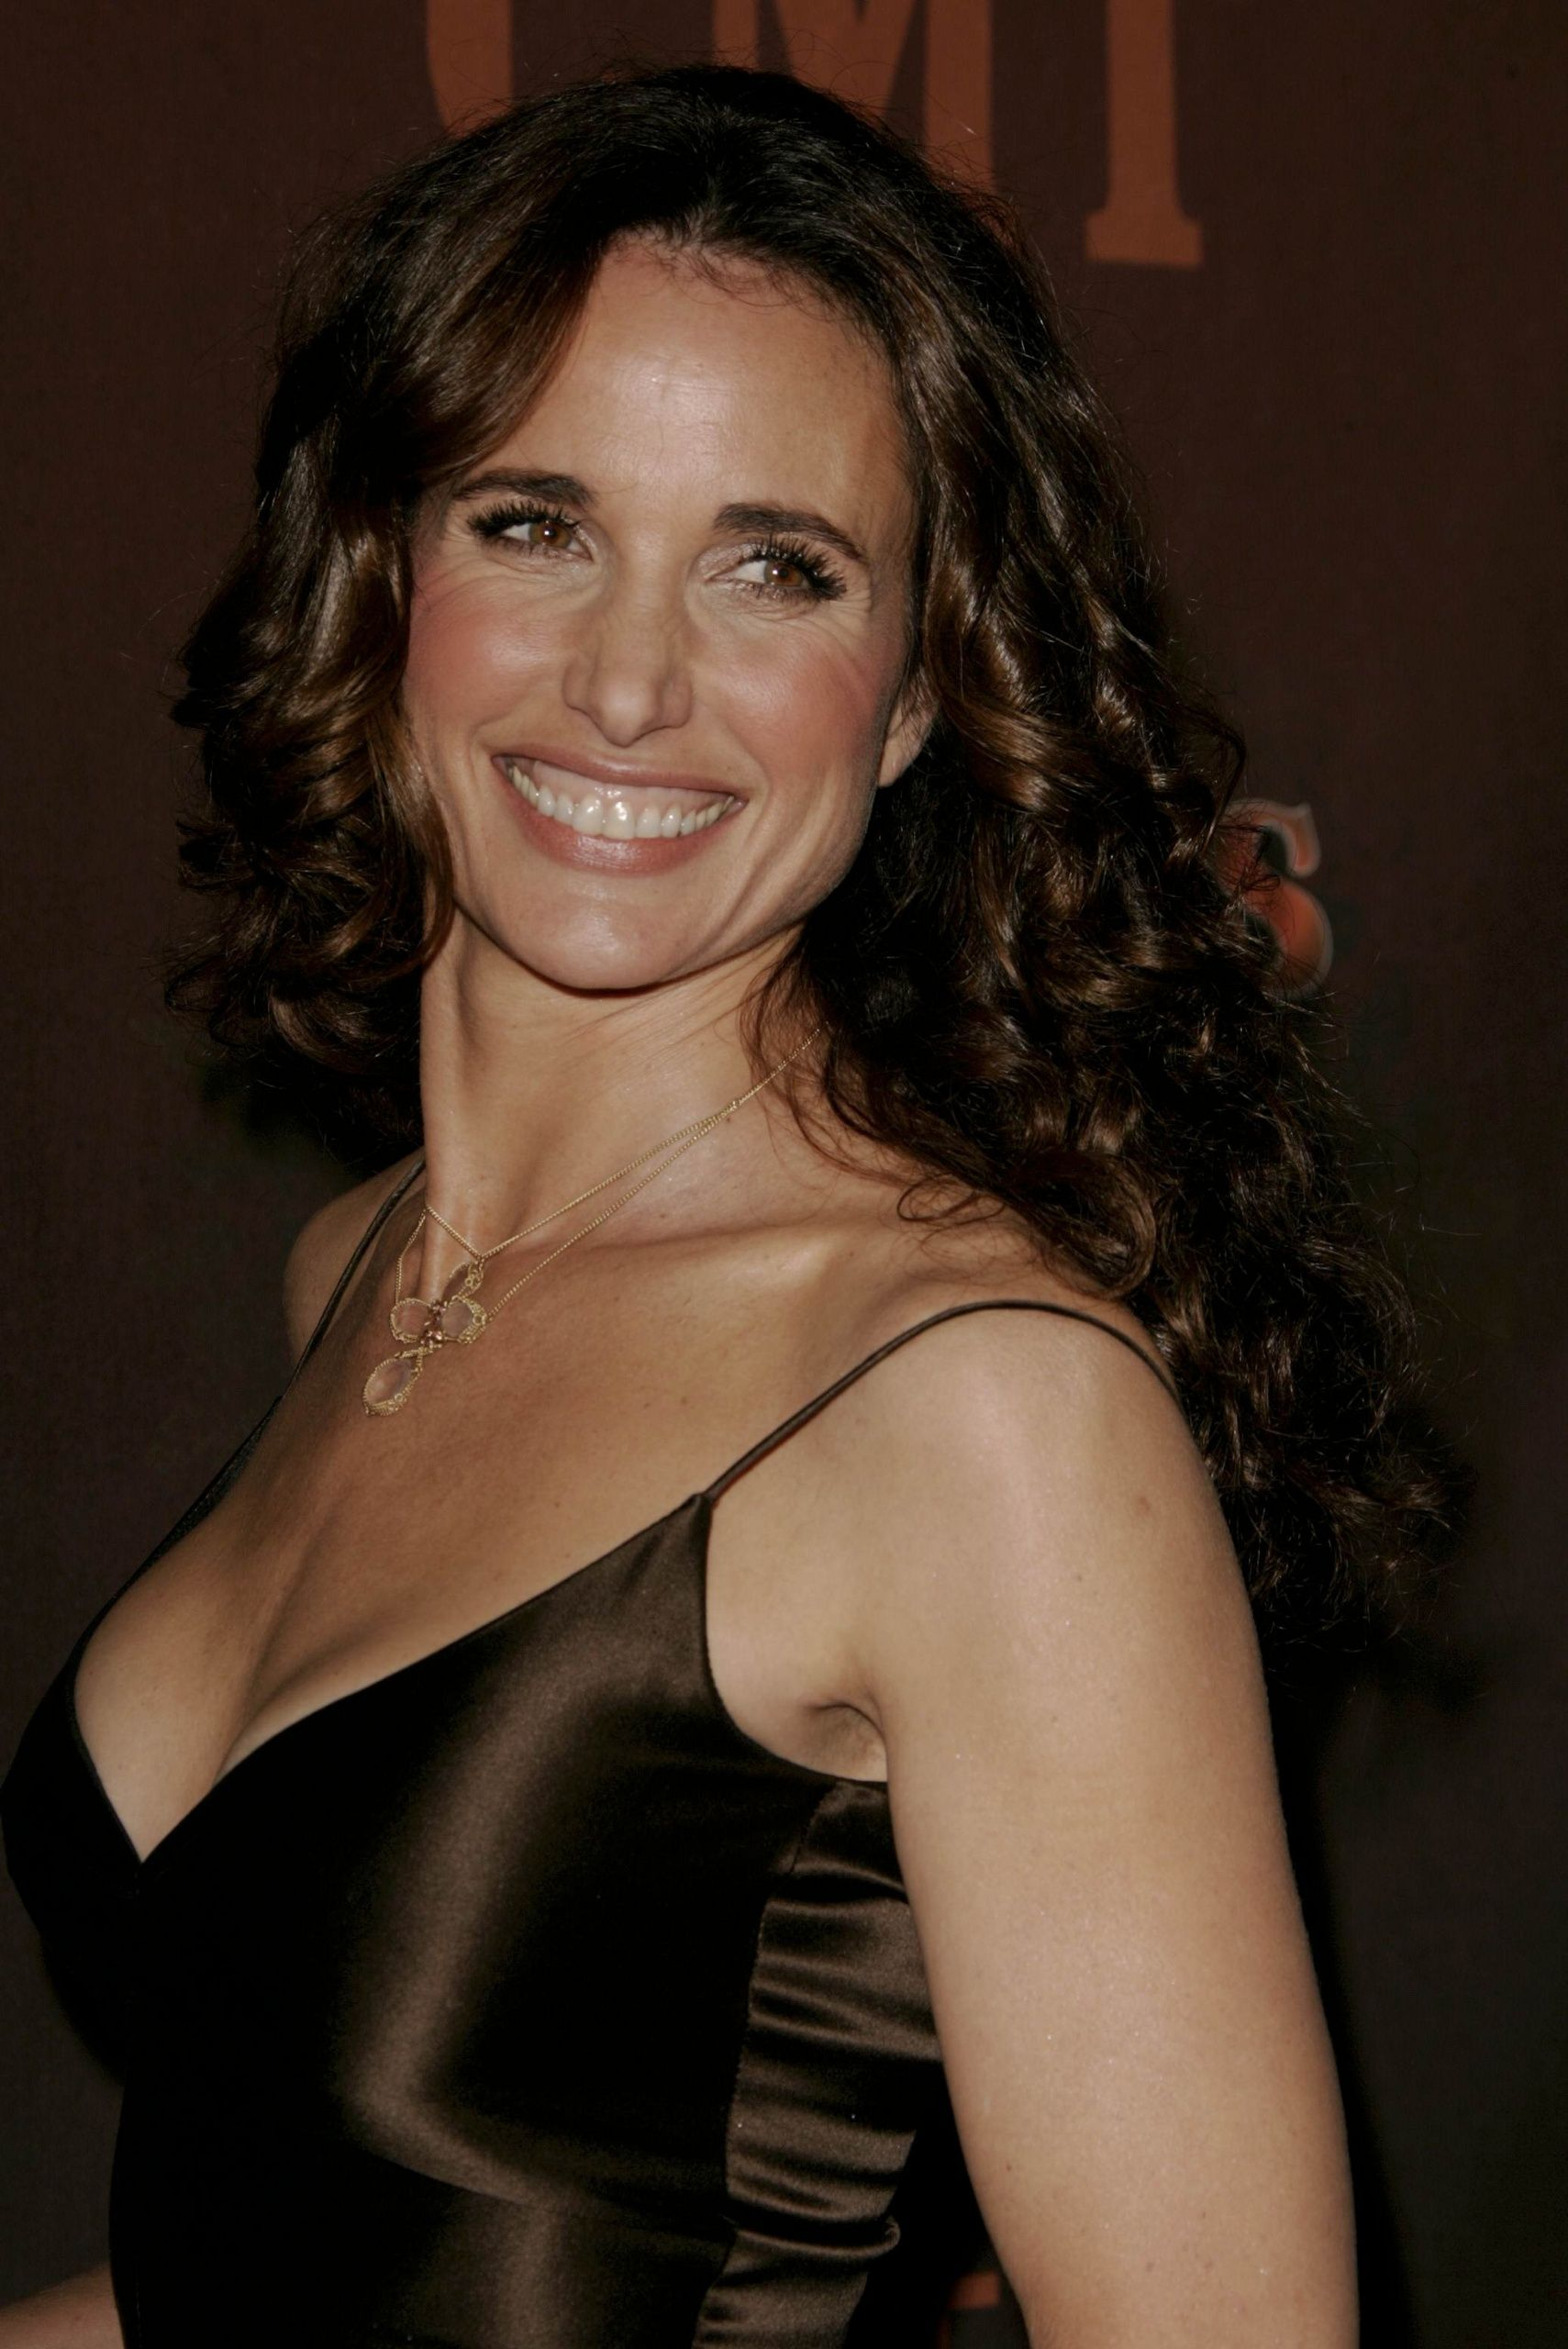 andie macdowell husbandandie macdowell 2016, andie macdowell young, andie macdowell instagram, andie macdowell 2017, andie macdowell groundhog day, andie macdowell 2015, andie macdowell 1985, andie macdowell photo, andie macdowell daughters, andie macdowell now, andie macdowell husband, andie macdowell and hugh grant, andie macdowell wikipedia, andie macdowell height, andie macdowell wiki, andie macdowell age, andie macdowell zimbio, andie macdowell calvin klein, andie macdowell edad, andie macdowell werbung